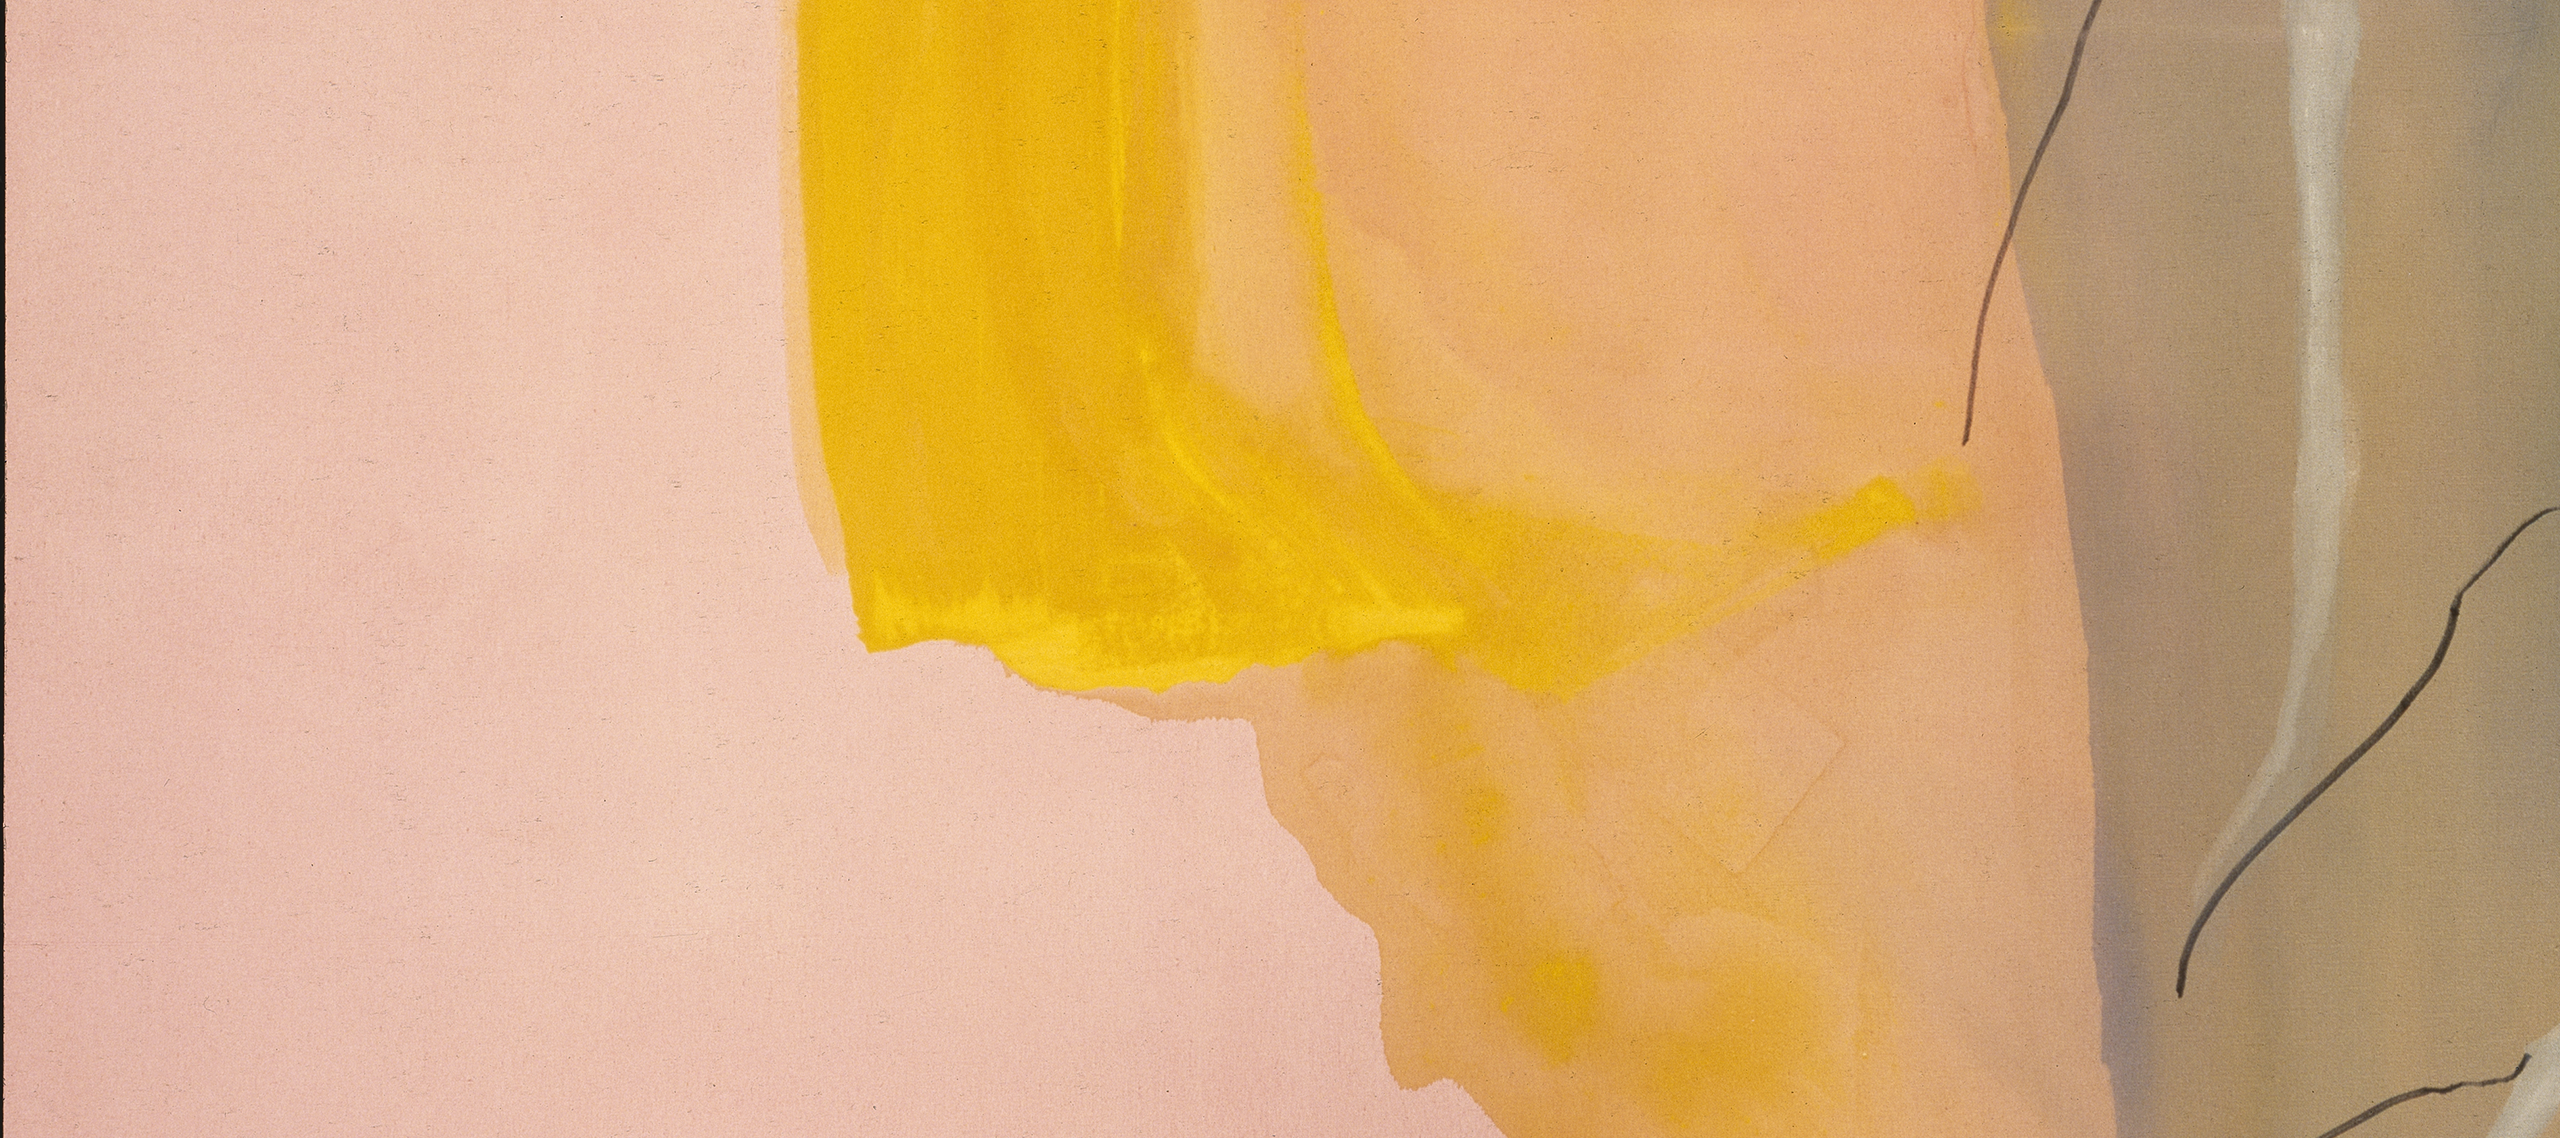 Abstract painting with large, gestural swaths of pink, yellow, peach, and gray. Scatered black lines and white brushstrokes at right.